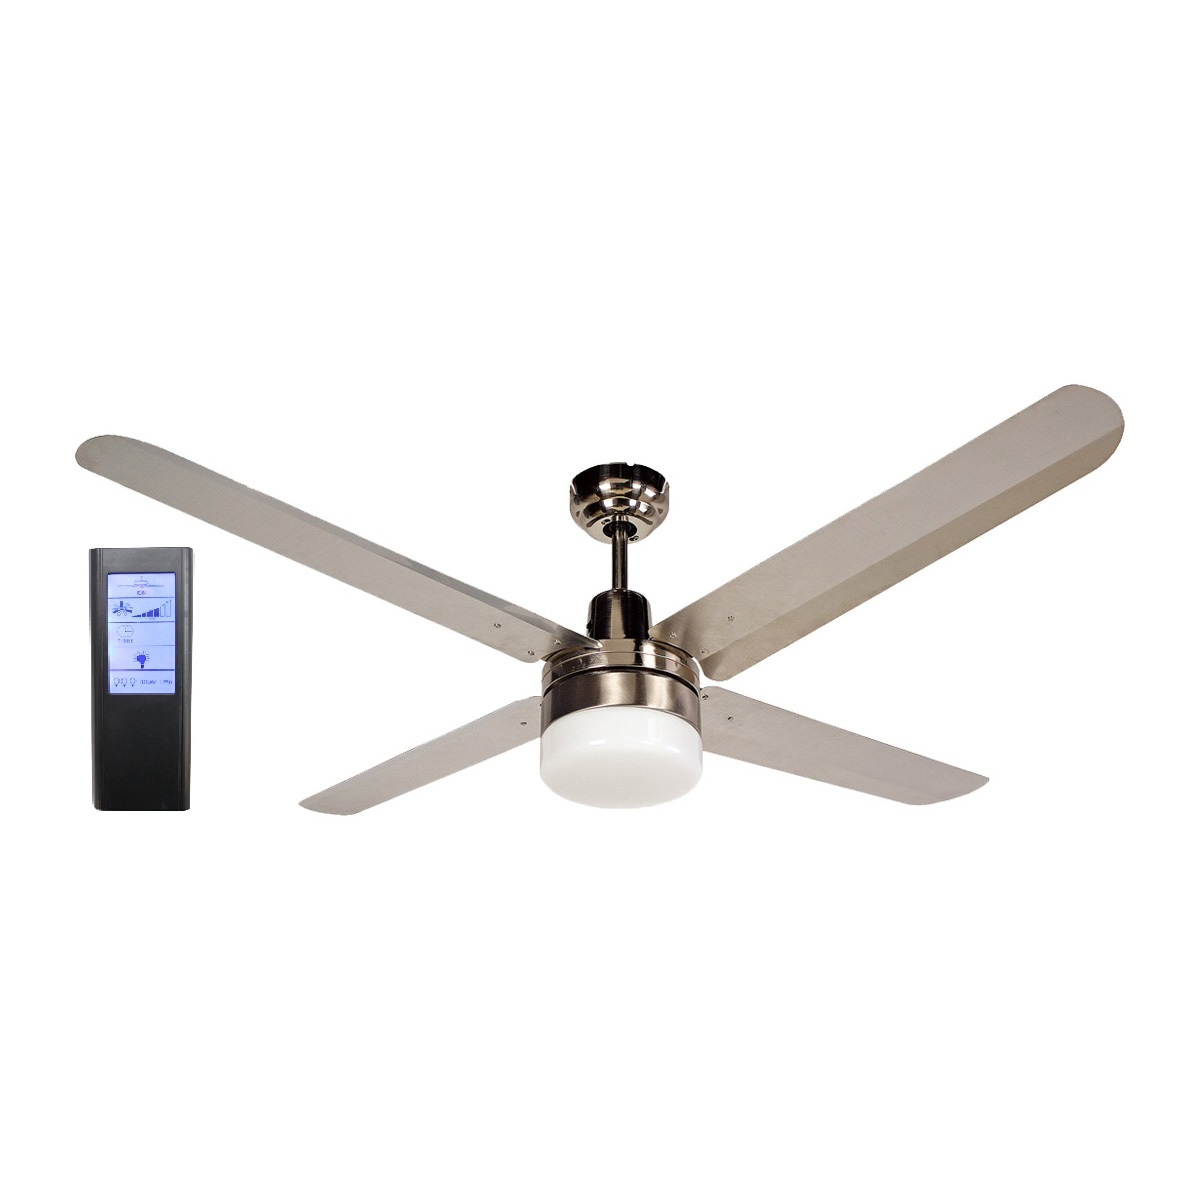 BLIZZARD56 1400mm 316SS Ceiling Fan With Light Touch